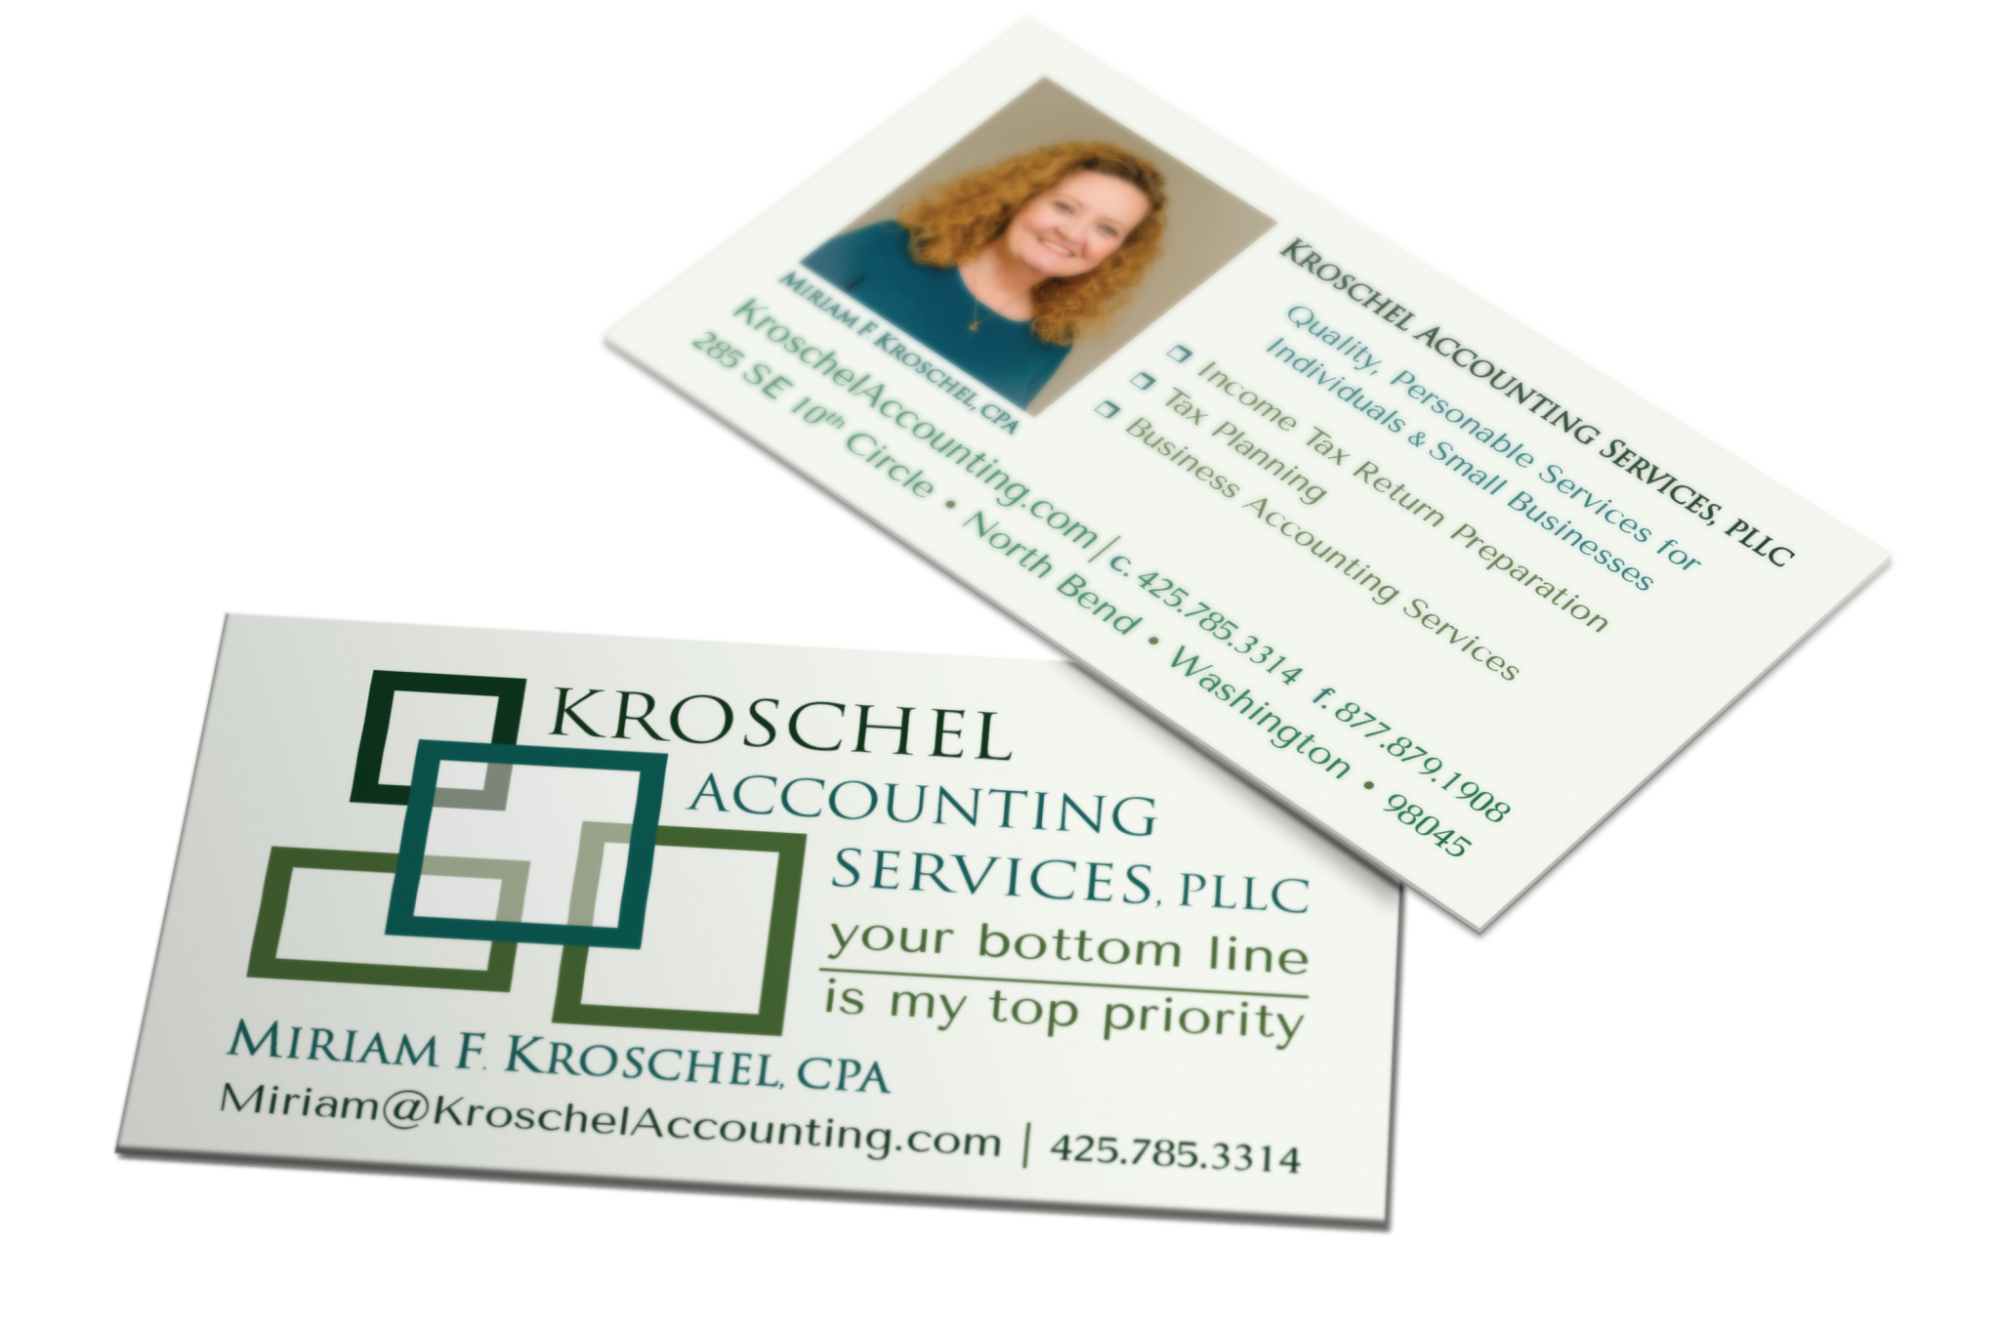 Blossom kroschel accounting business cards kroschel accounting business cards reheart Images